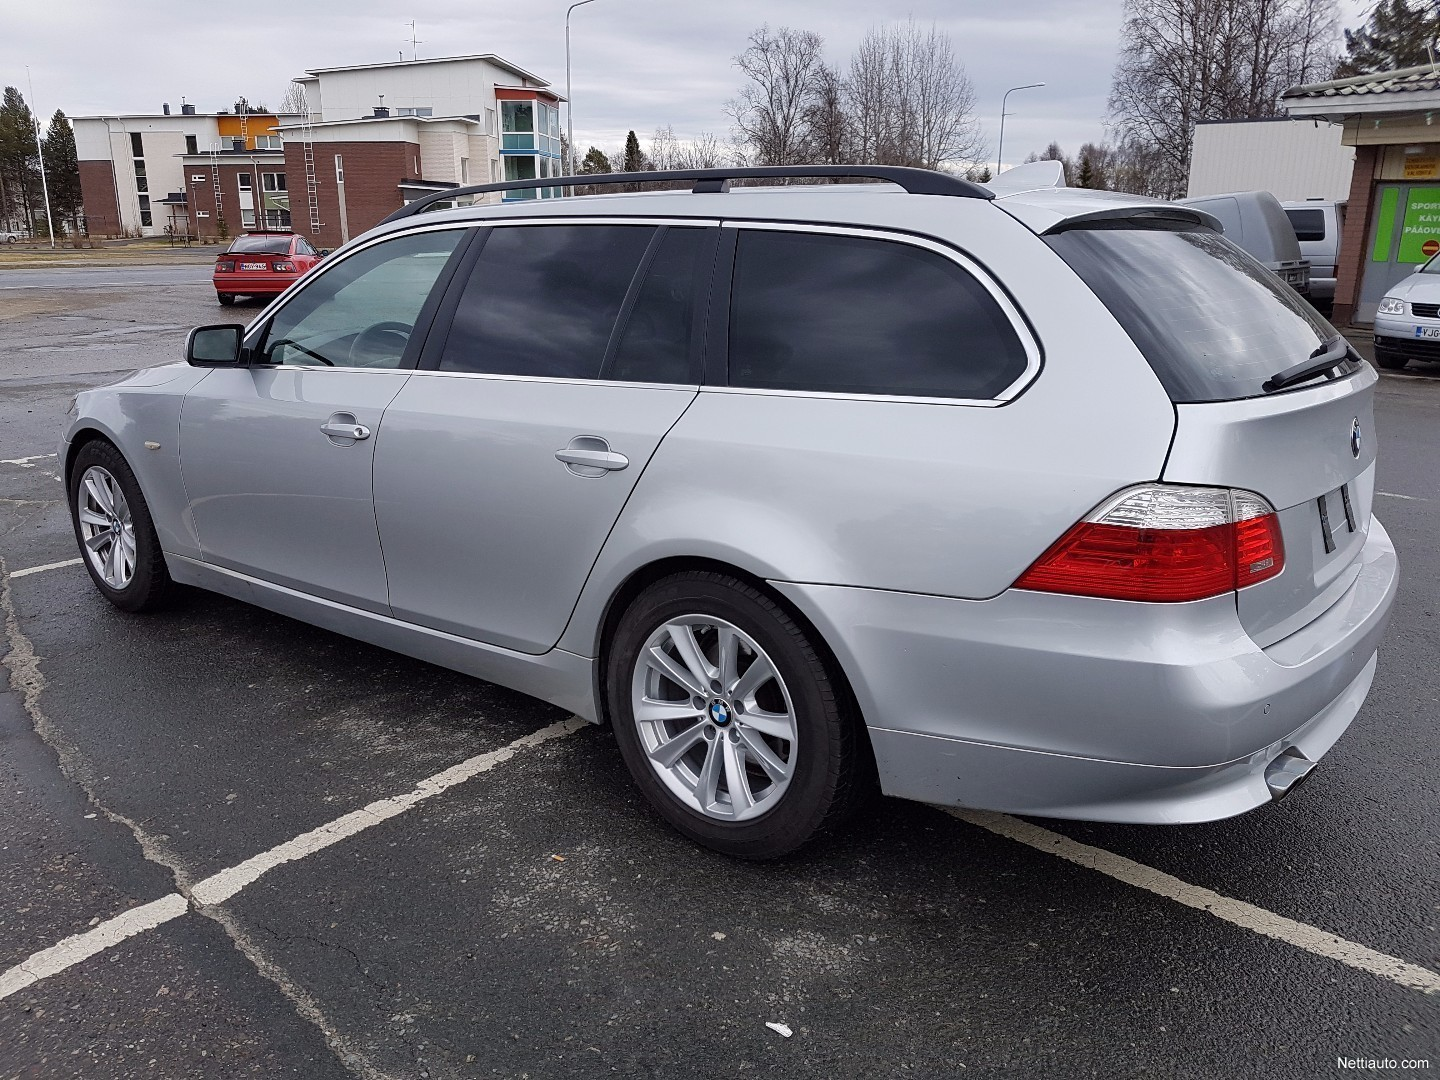 bmw 530 xd touring a station wagon 2007 used vehicle. Black Bedroom Furniture Sets. Home Design Ideas